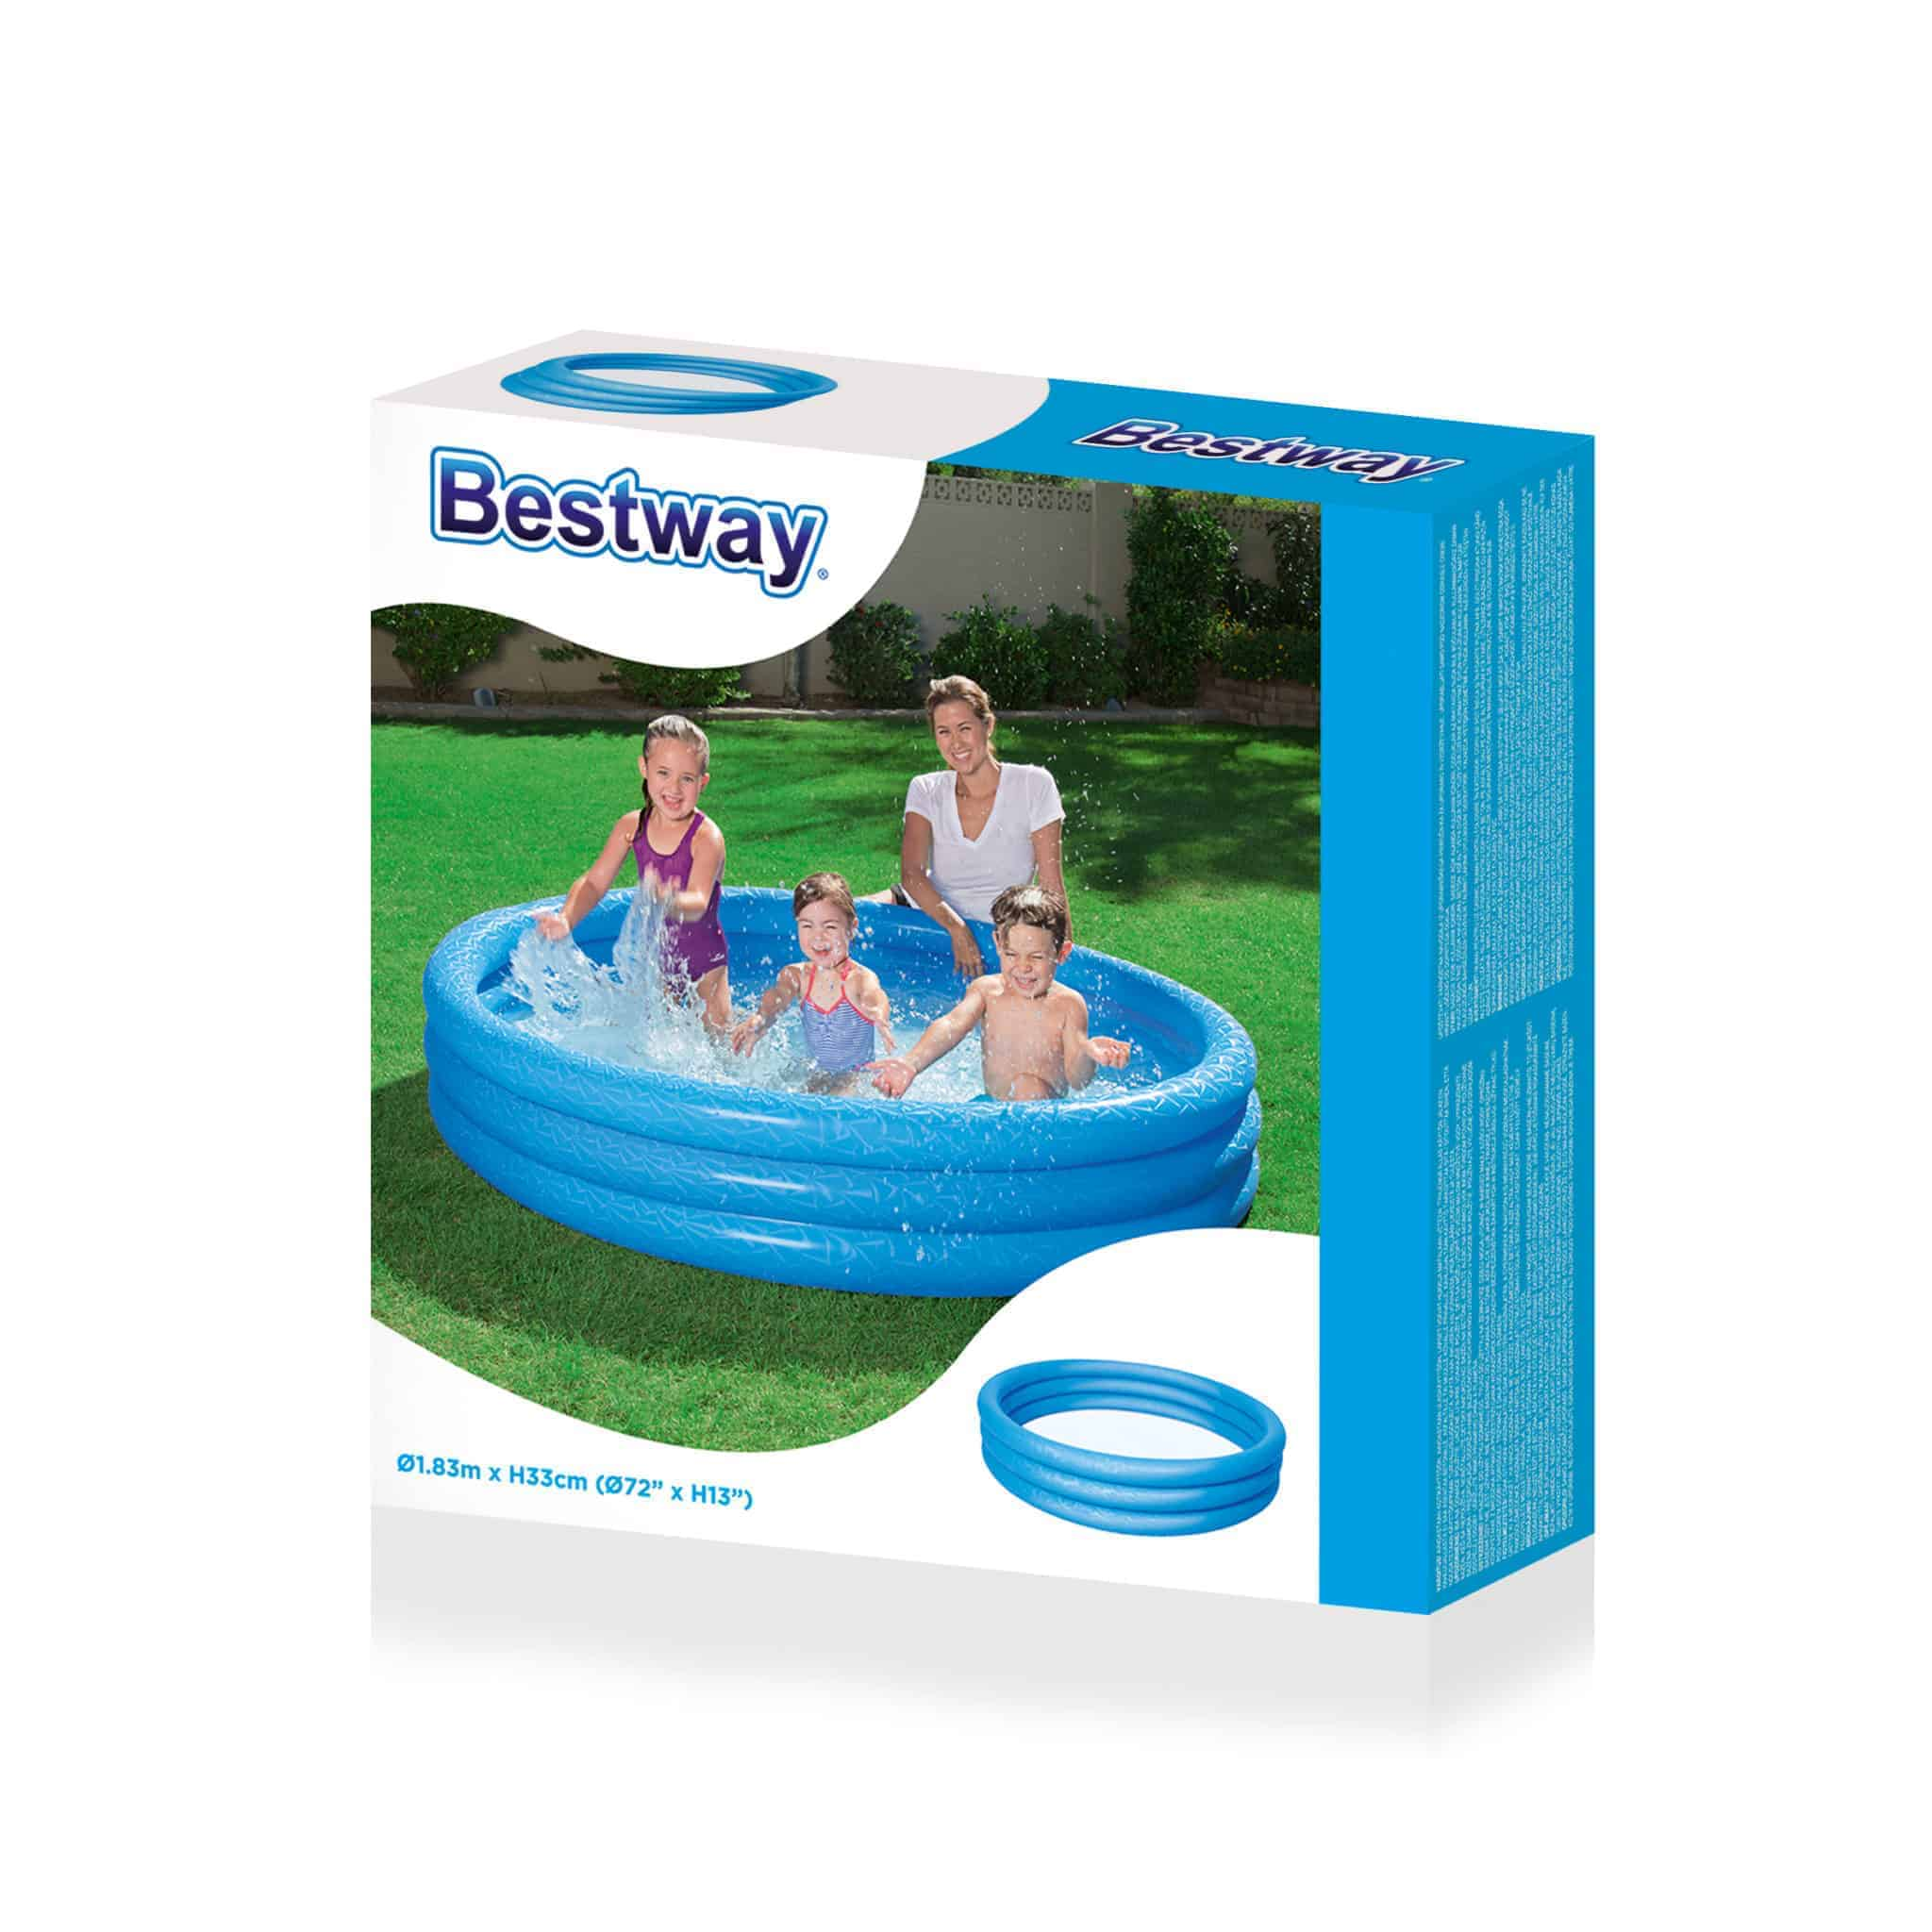 Piscina inflable bestway 3 aros 183 x 33 cms librer a elim for Piscina inflable bestway